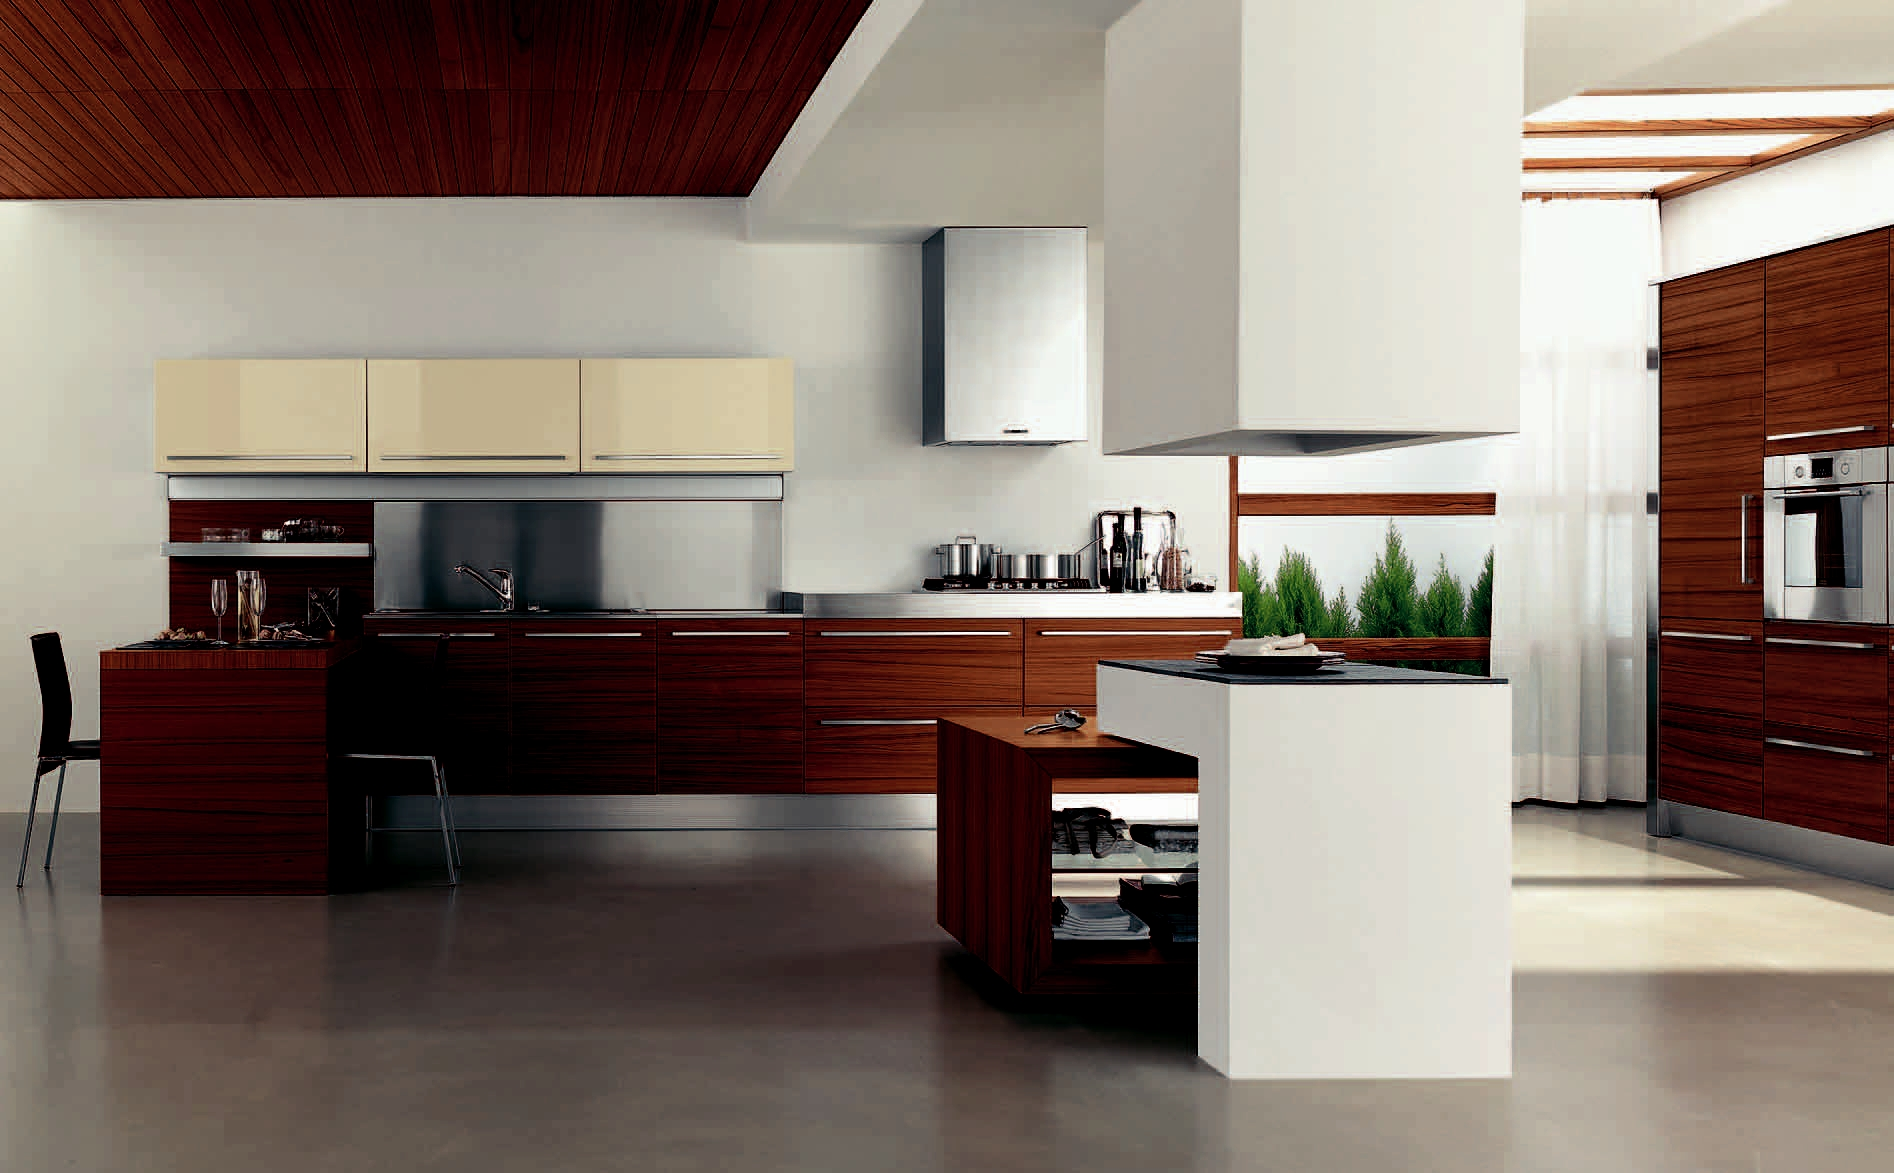 kitchen design pictures modern 31 modern kitchen design ideas 404